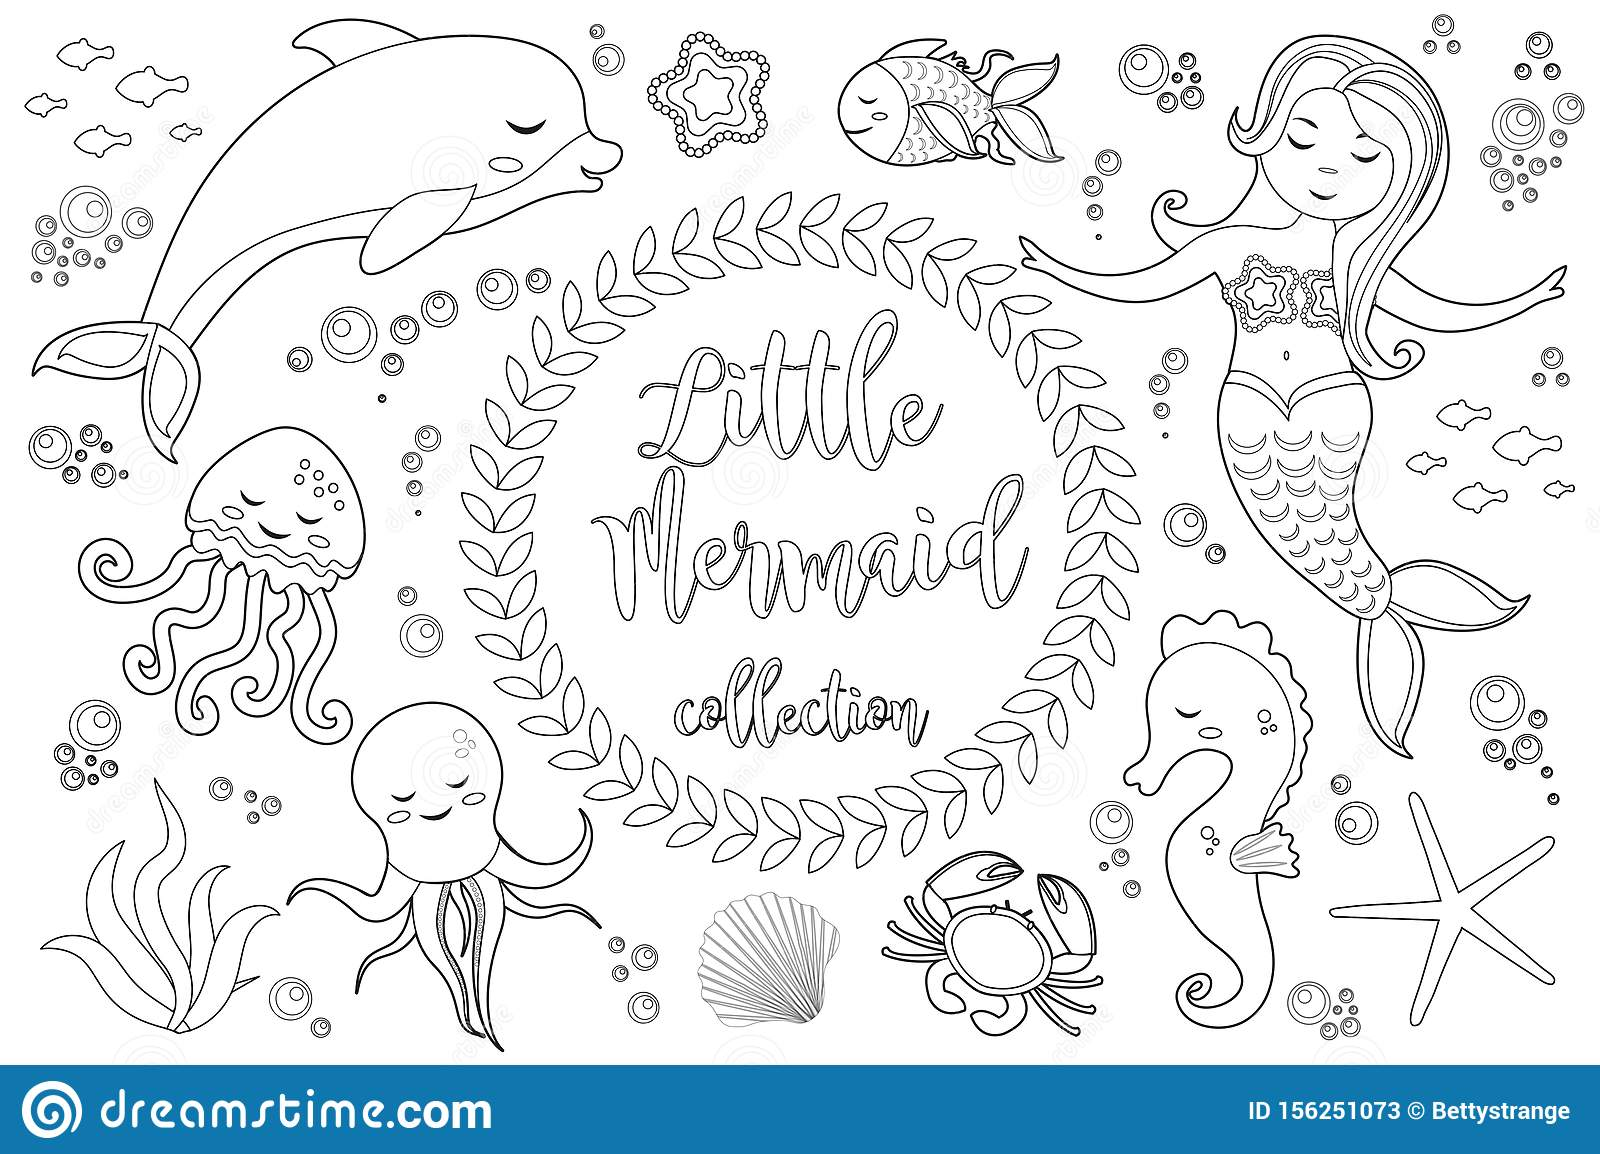 Little Mermaid Coloring Page coloring page & book for kids. | 1154x1600